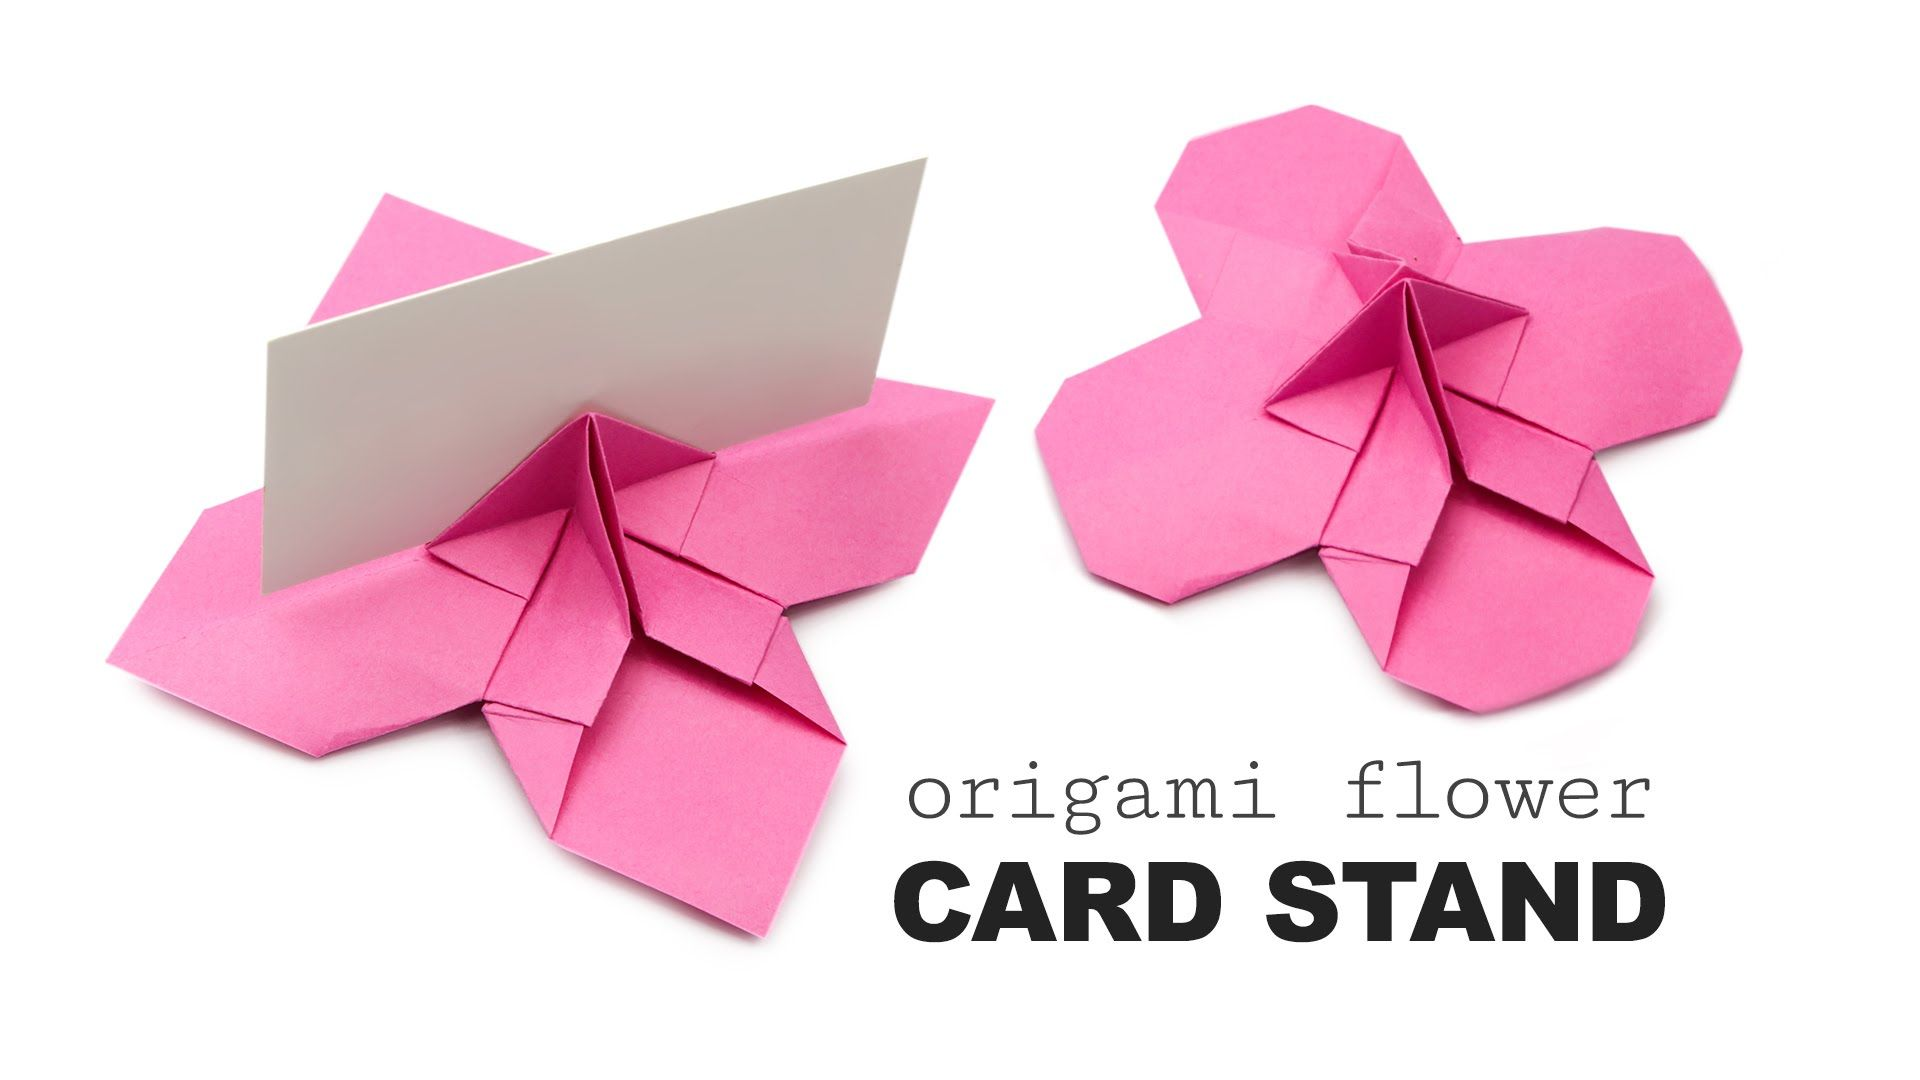 Origami bamboo letterfold folding instructions - 171 Best Origami Images On Pinterest Diy Origami Diy Paper And Origami